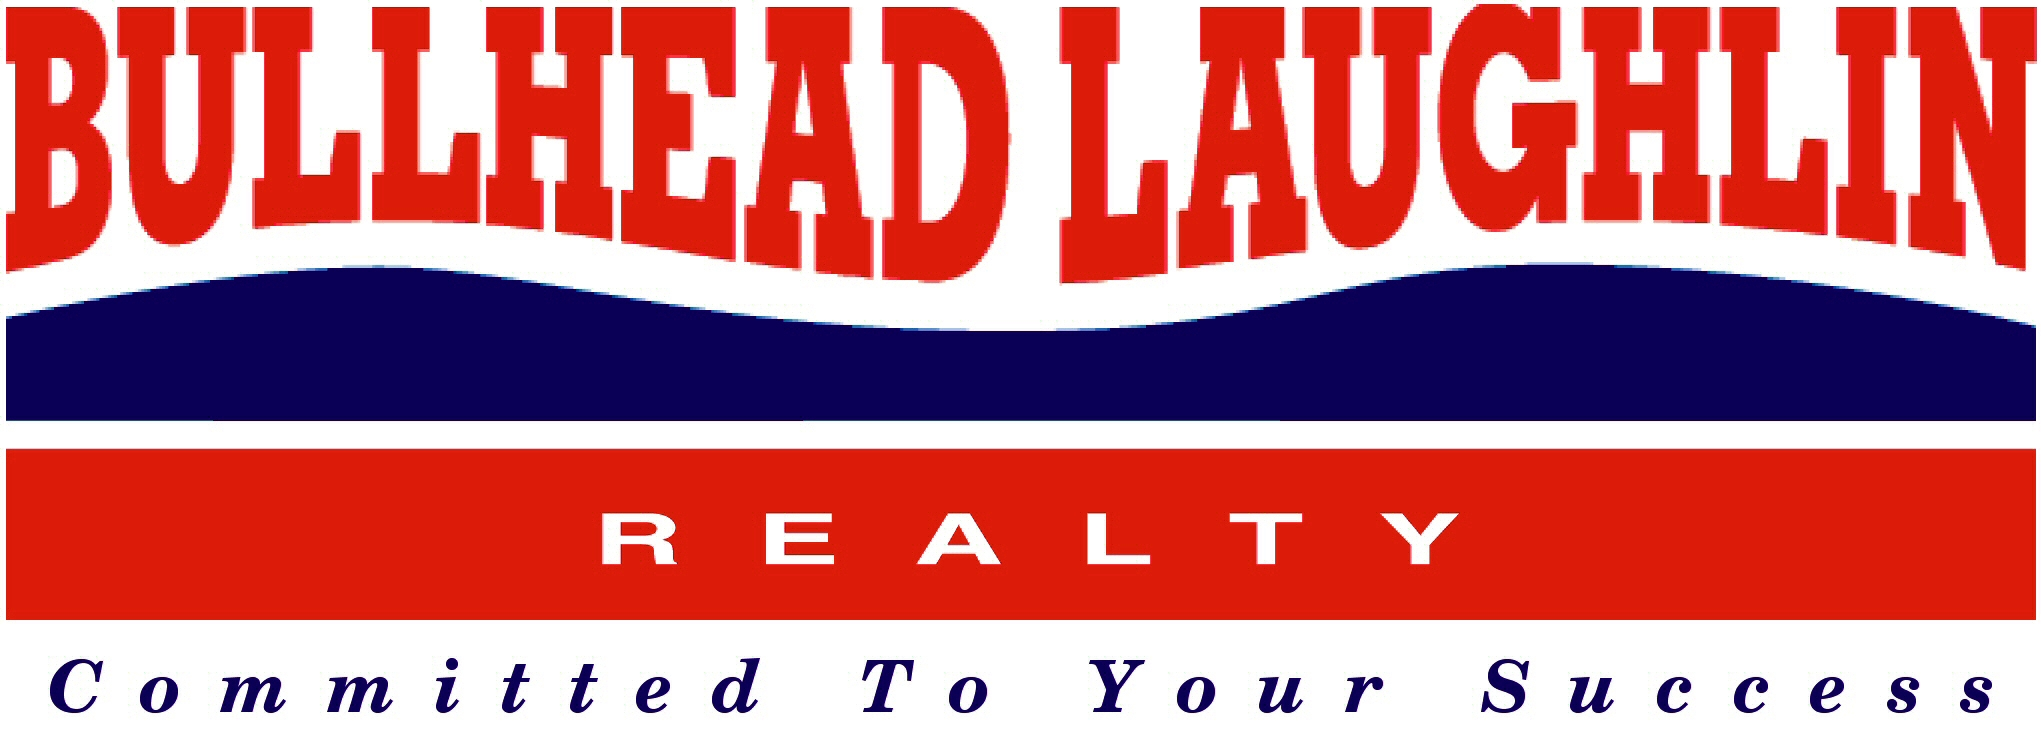 Bullhead Laughlin Realty